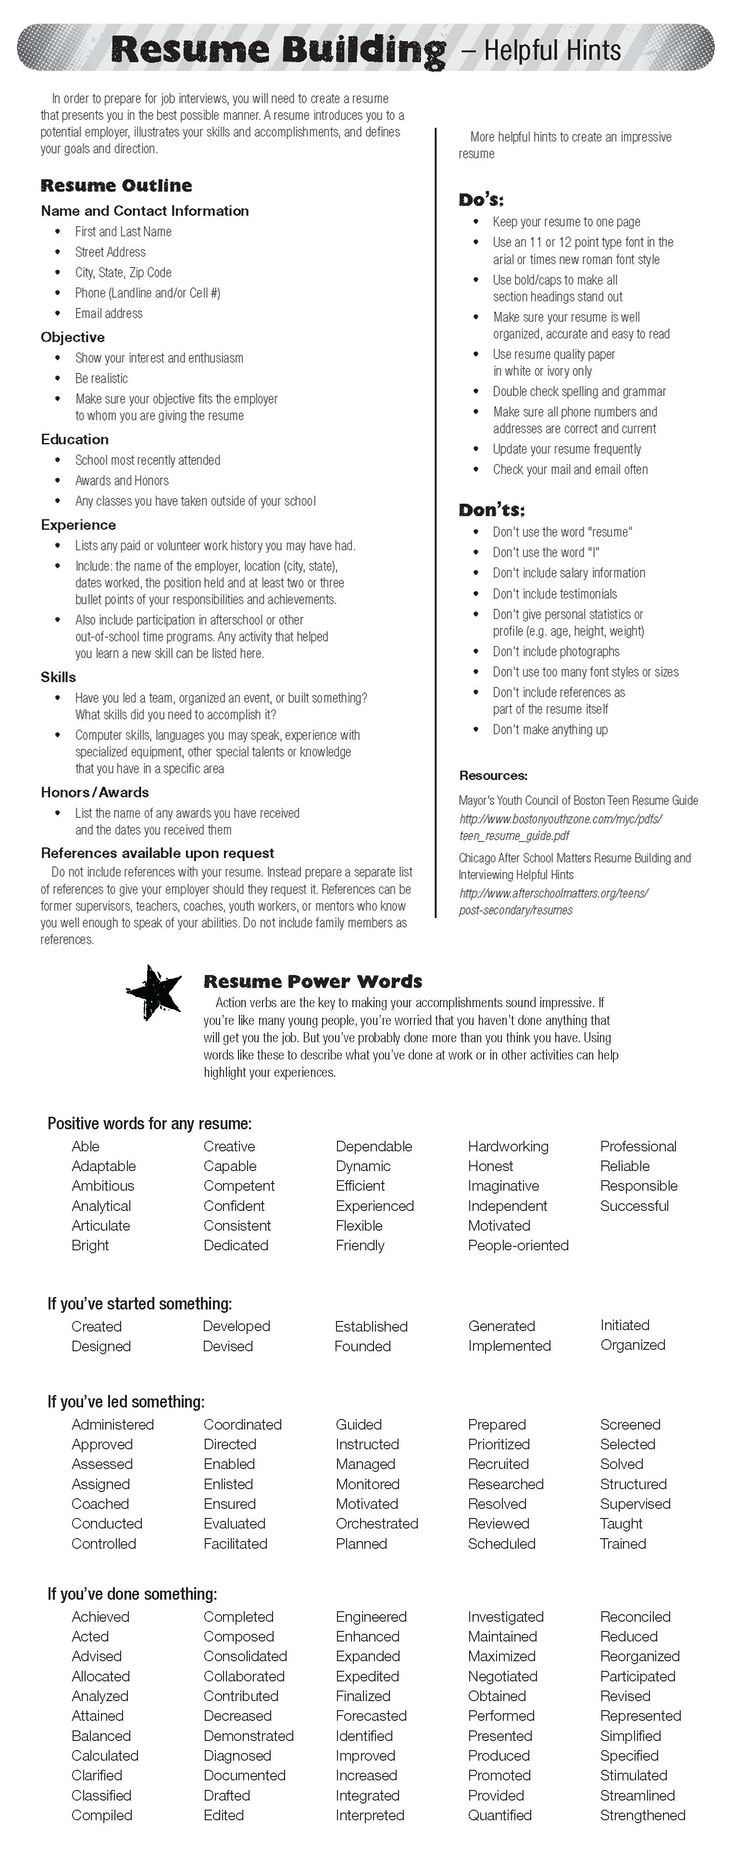 Opposenewapstandardsus  Nice  Ideas About Resume On Pinterest  Cv Format Resume  With Lovely Check Out Todays Resume Building Tips Resume Resumepowerwords With Beautiful Resume Define Also Teenage Resume In Addition High School Resumes And College Resume Format As Well As Cpa Resume Additionally Server Resume Sample From Pinterestcom With Opposenewapstandardsus  Lovely  Ideas About Resume On Pinterest  Cv Format Resume  With Beautiful Check Out Todays Resume Building Tips Resume Resumepowerwords And Nice Resume Define Also Teenage Resume In Addition High School Resumes From Pinterestcom